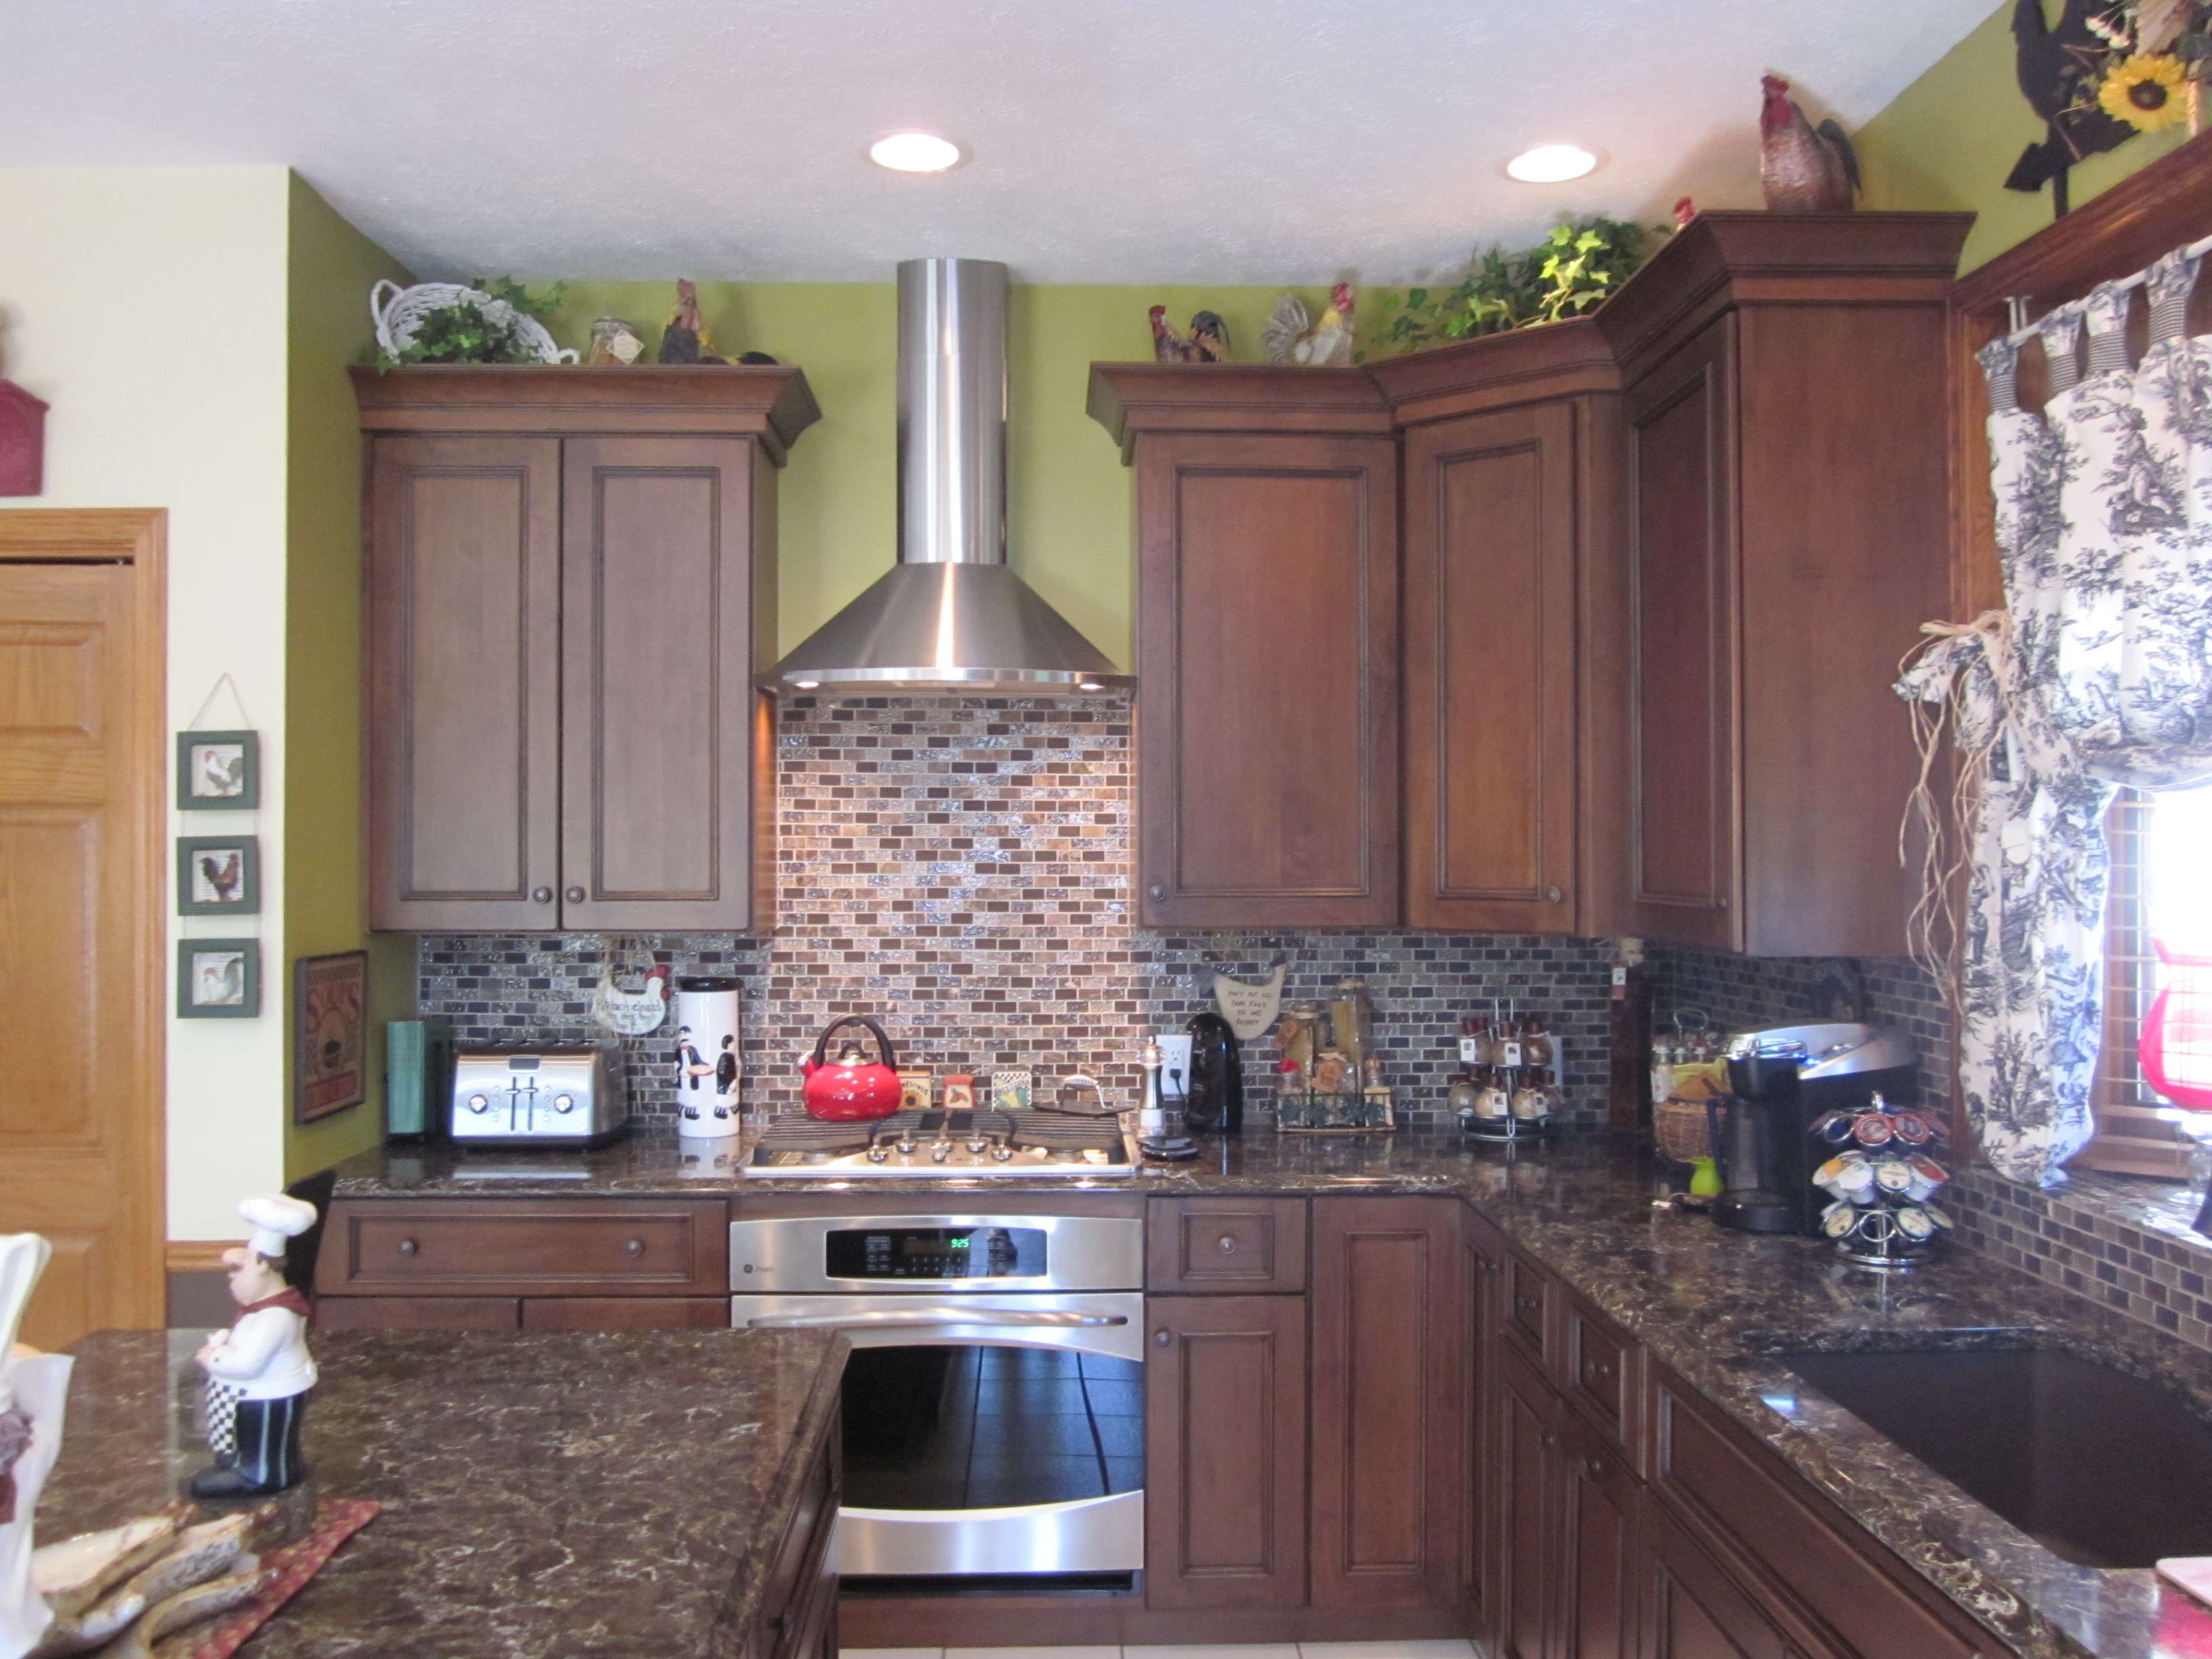 kitchen remodel 8307 002 - kitchens by diane - rockford, il - loves